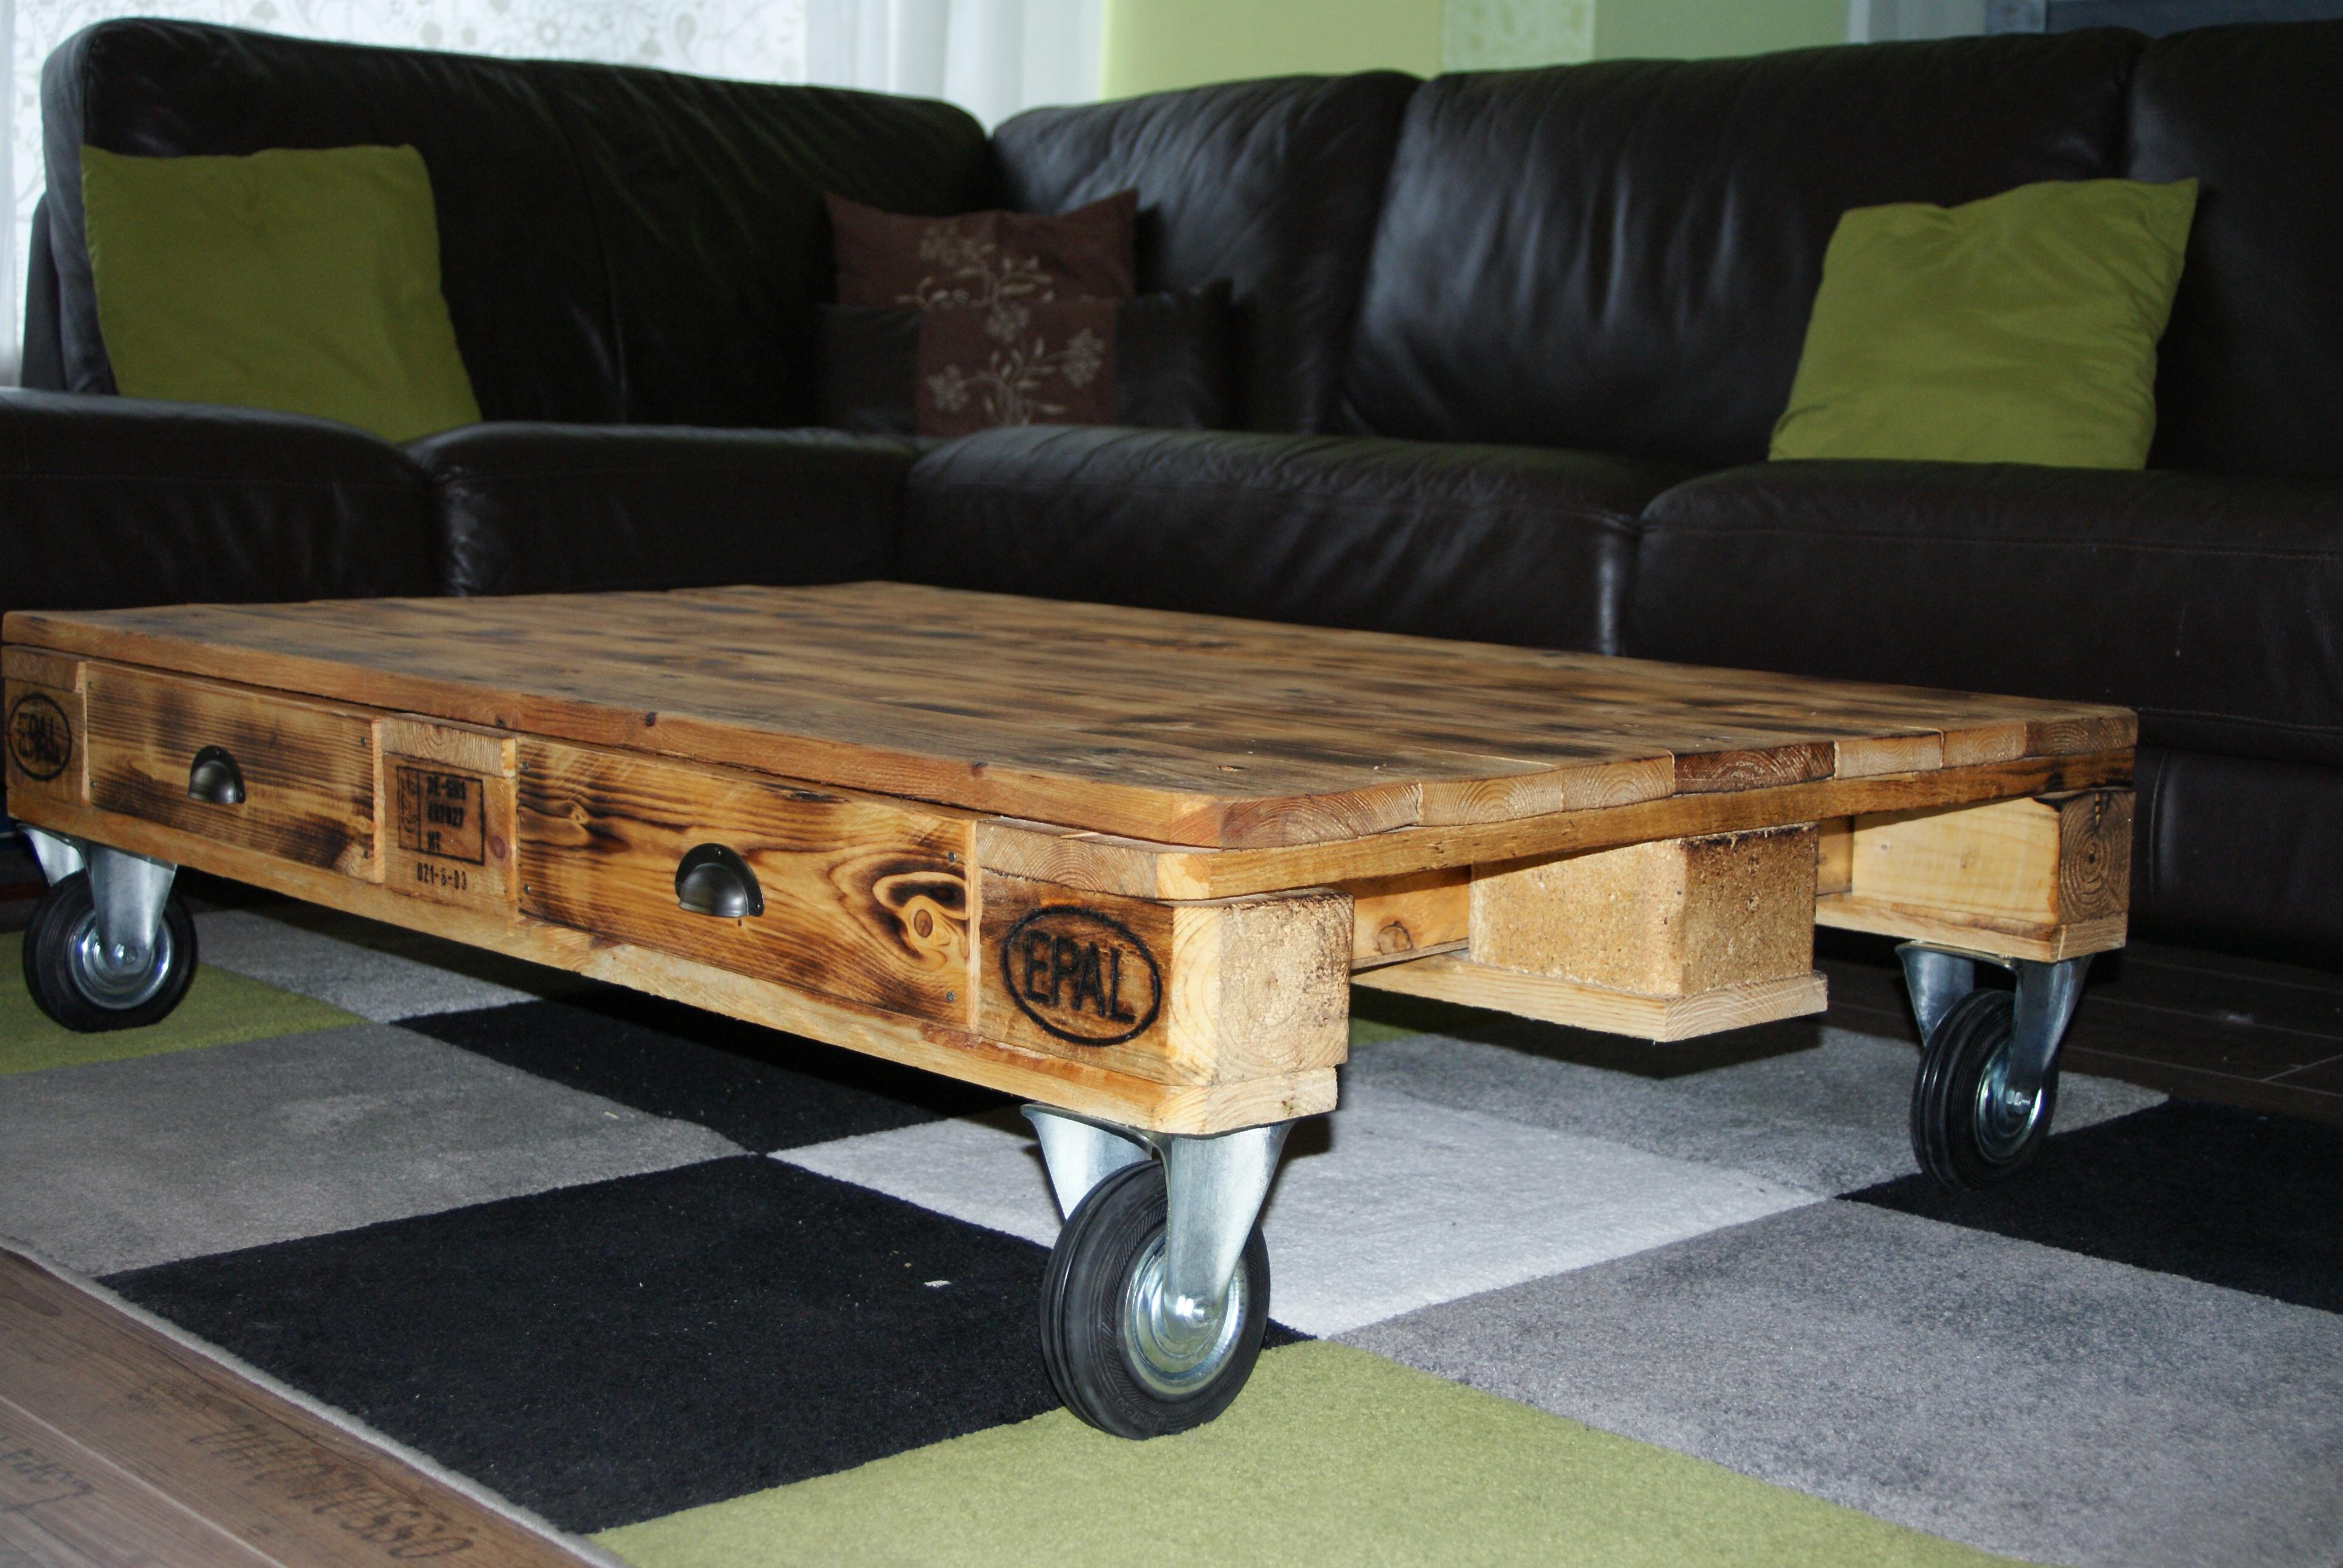 Couchtisch diy upcycling recyceltesholz wohnausstatter  4660e06f dbeb 4439 b15c 2d0f9e5b9d8c